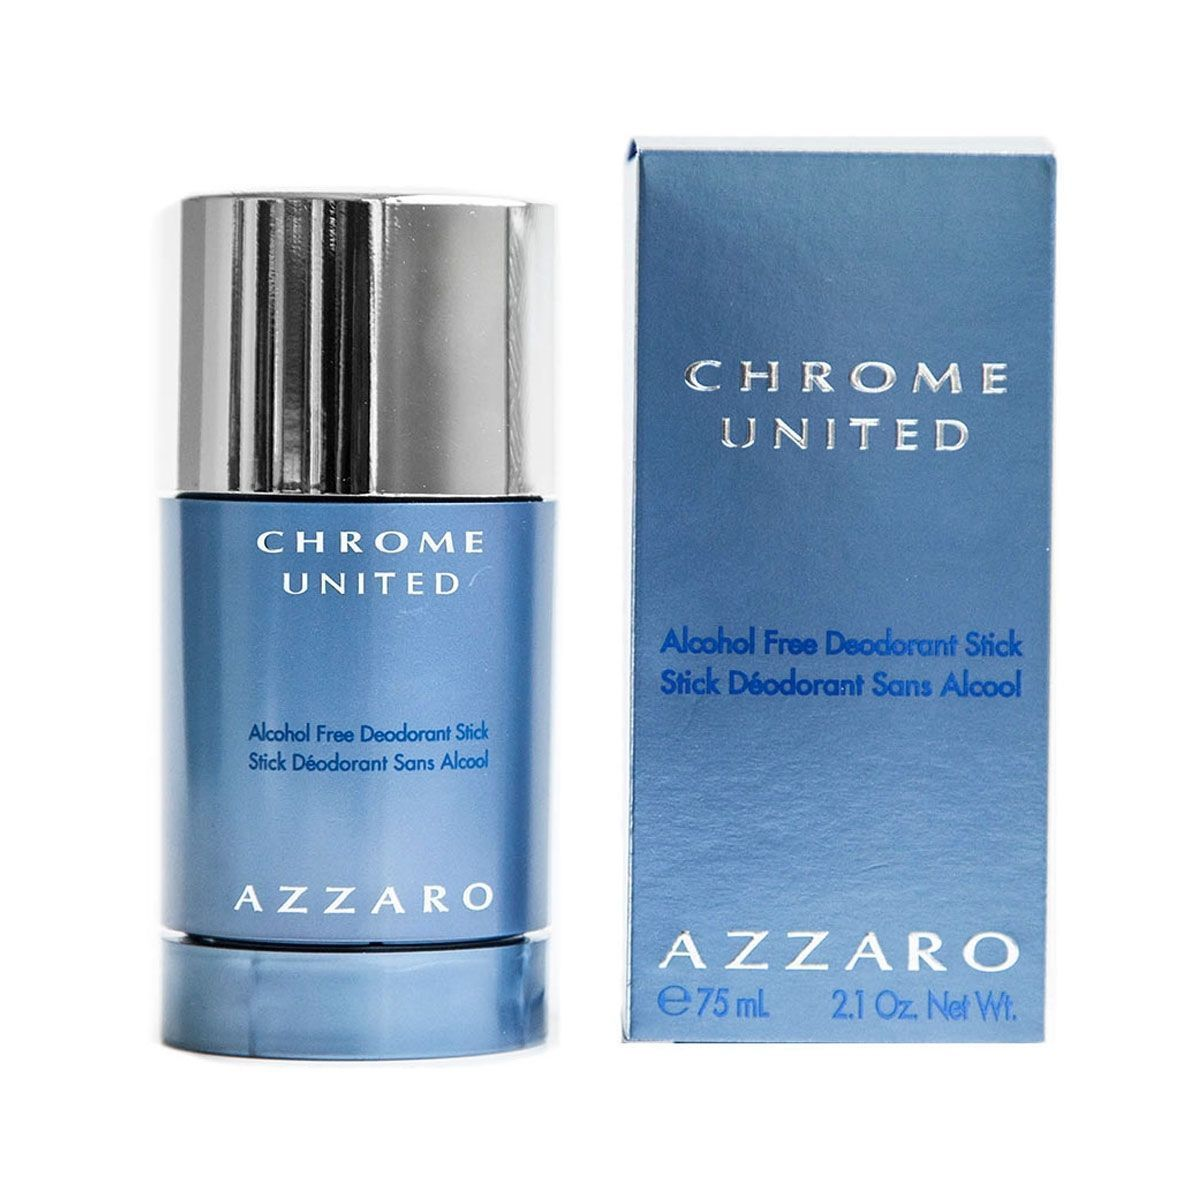 Chrome United by Azzaro Alcohol-Free Deodorant Stick 2.1 oz / 75mL NEW & BOXED